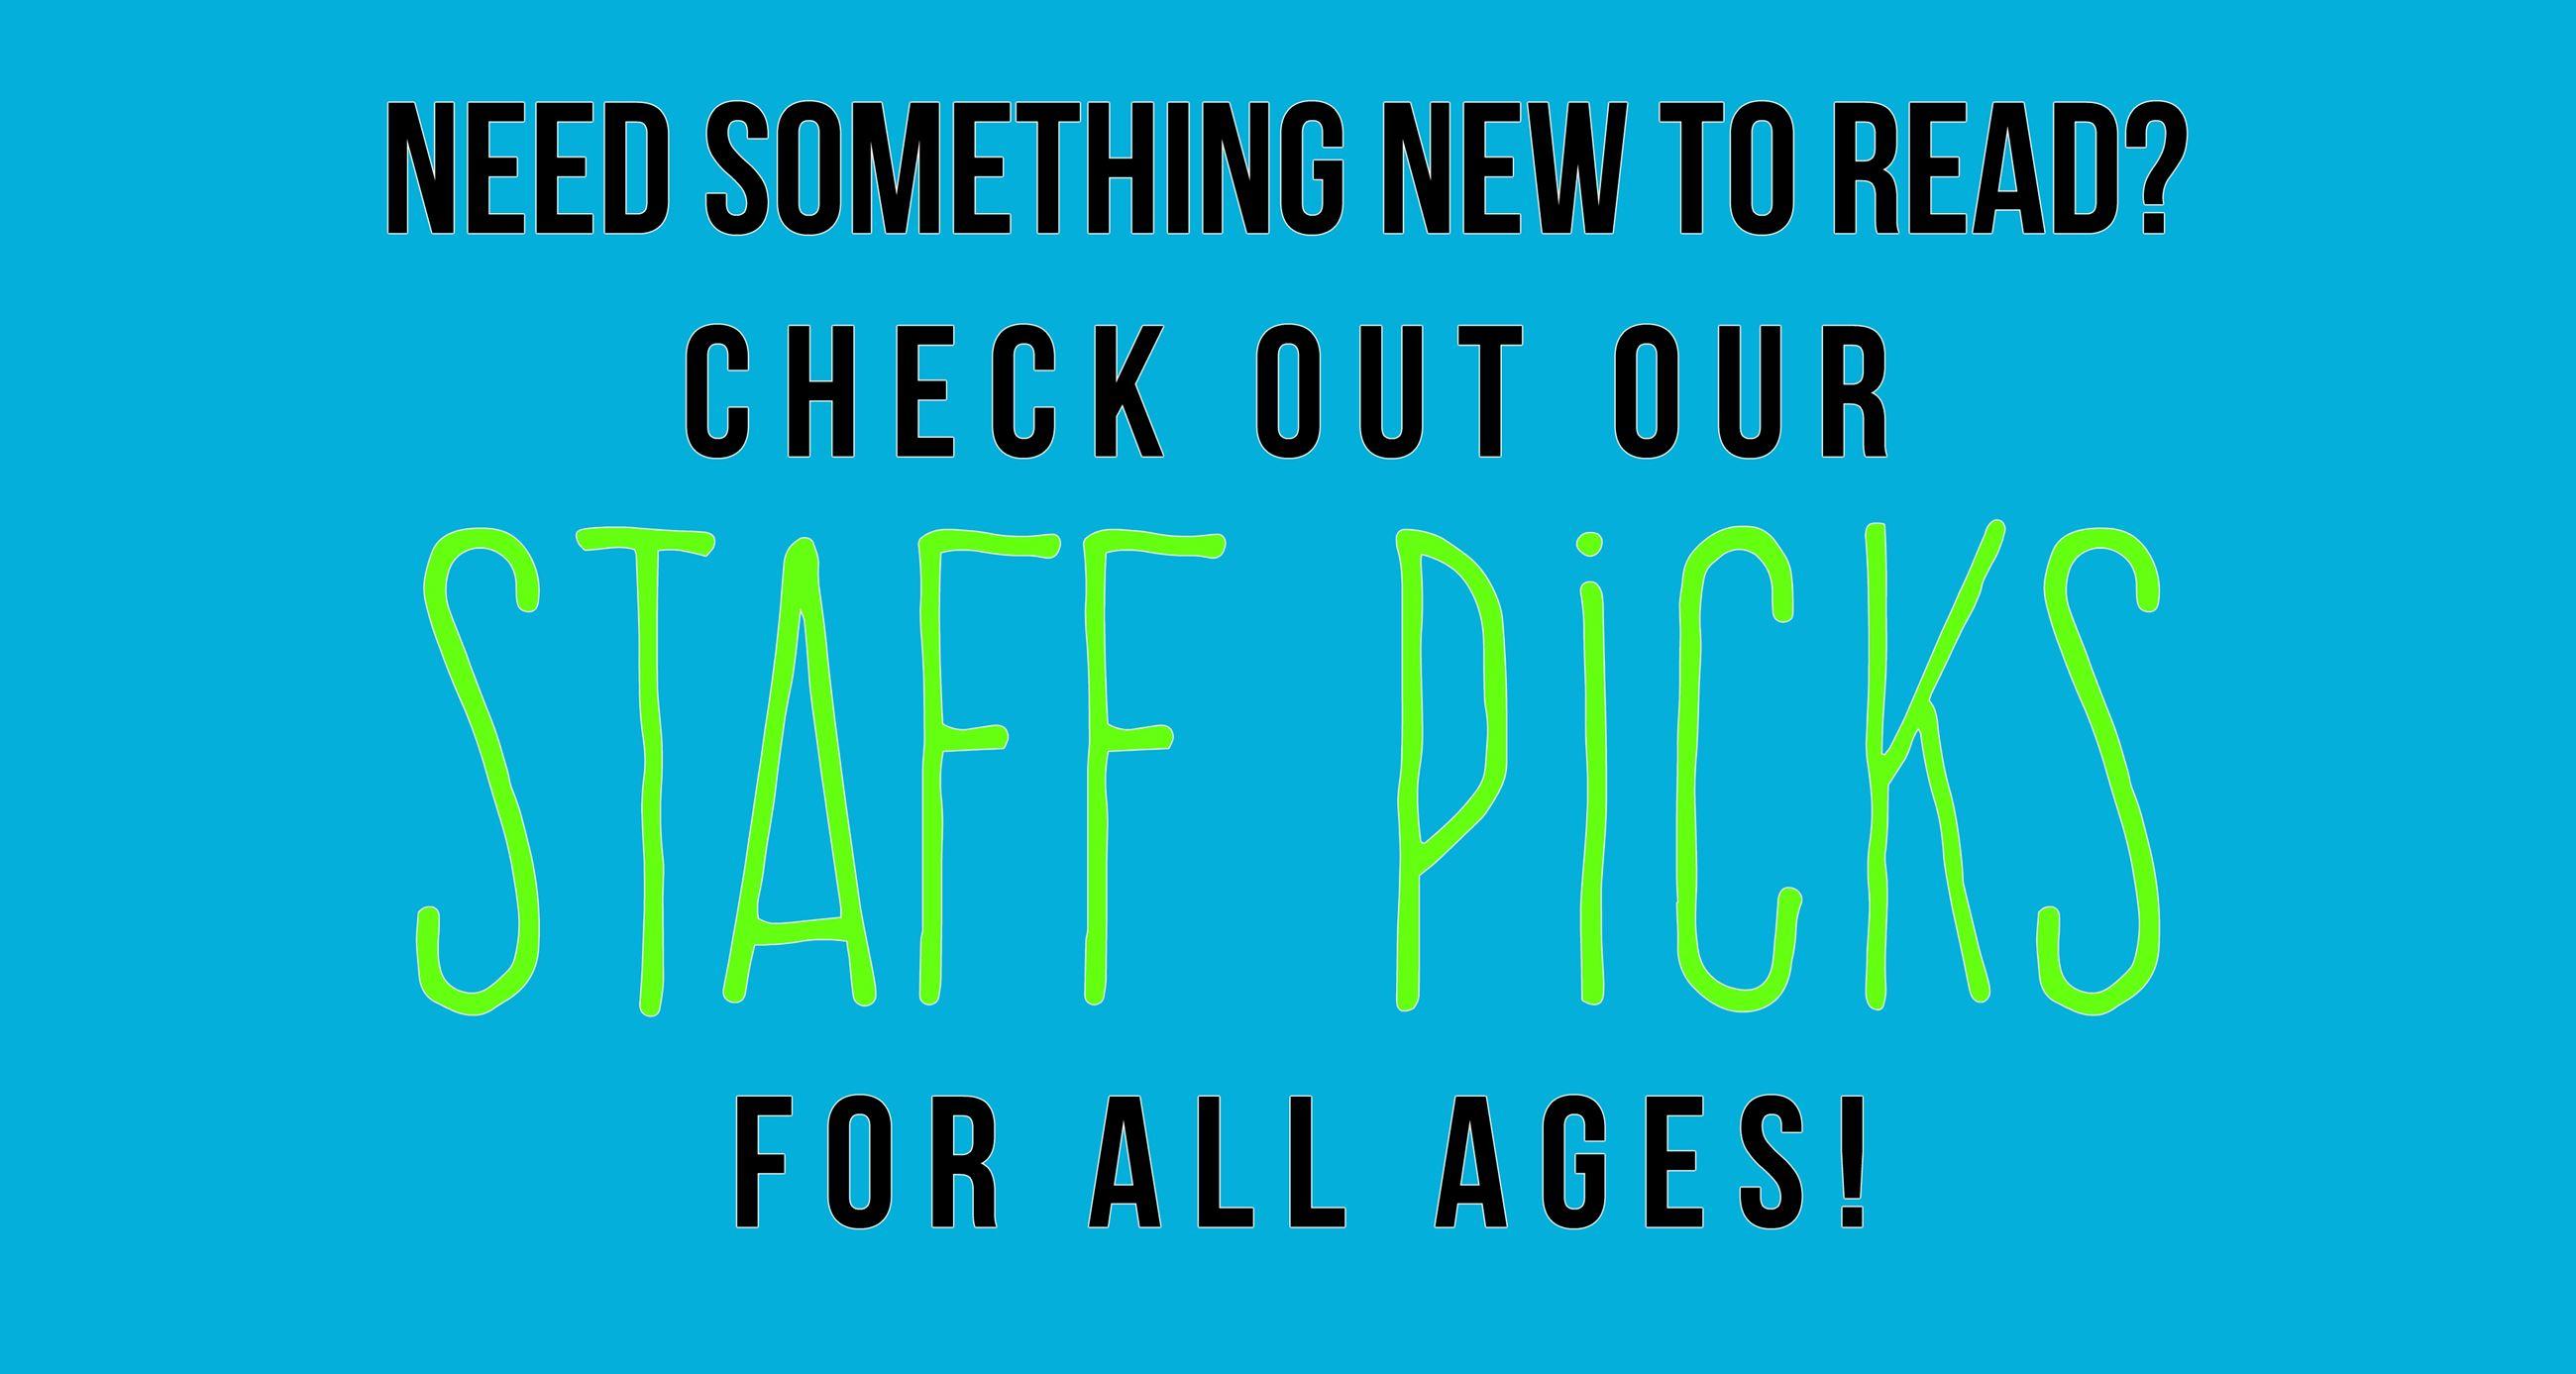 need something new to read? check out our staff picks for all ages!